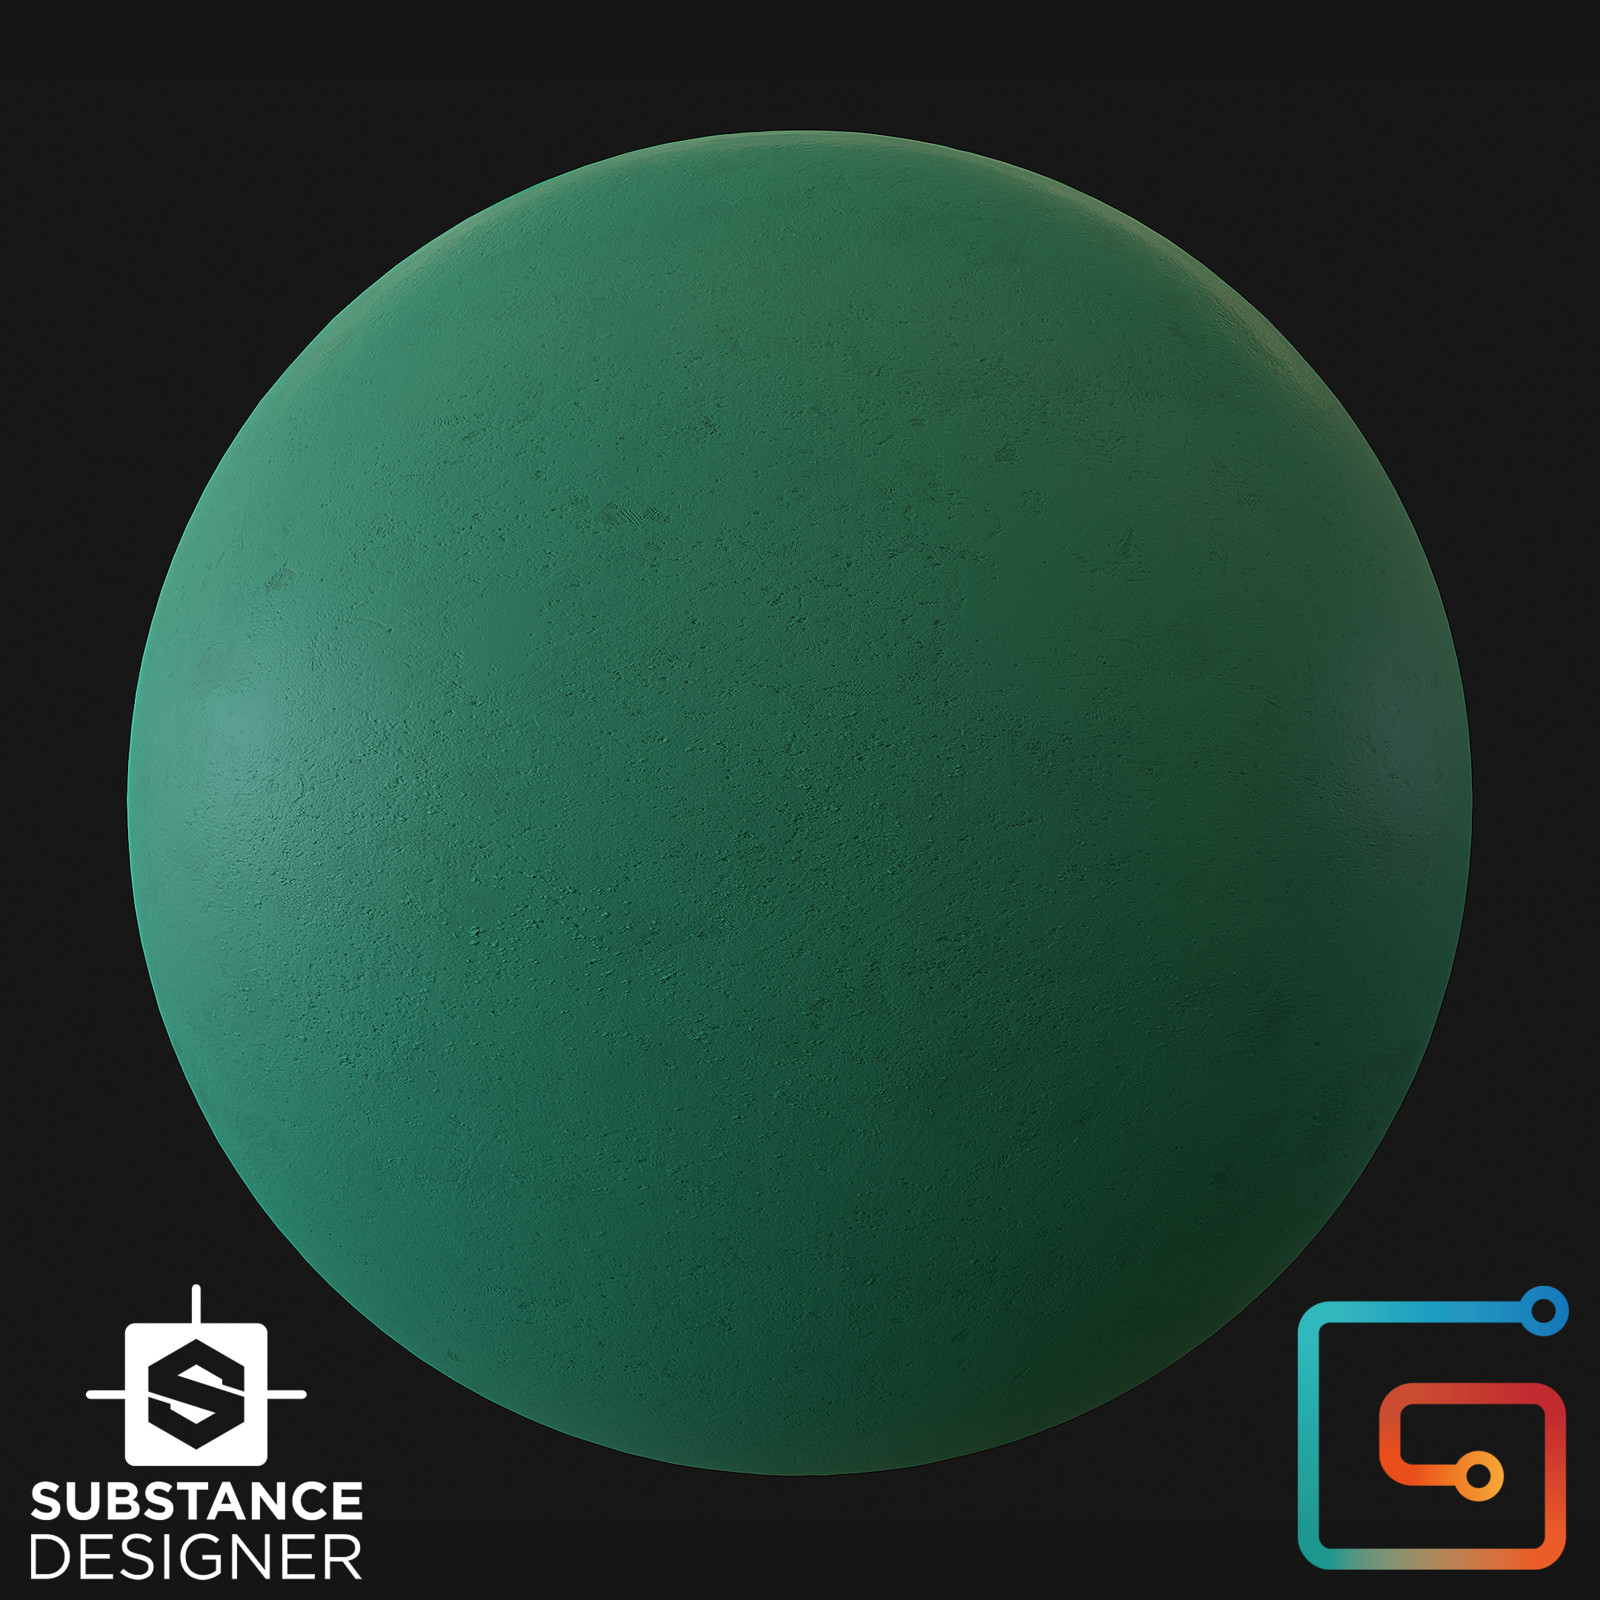 Plaster - Painted - Substance Designer Material